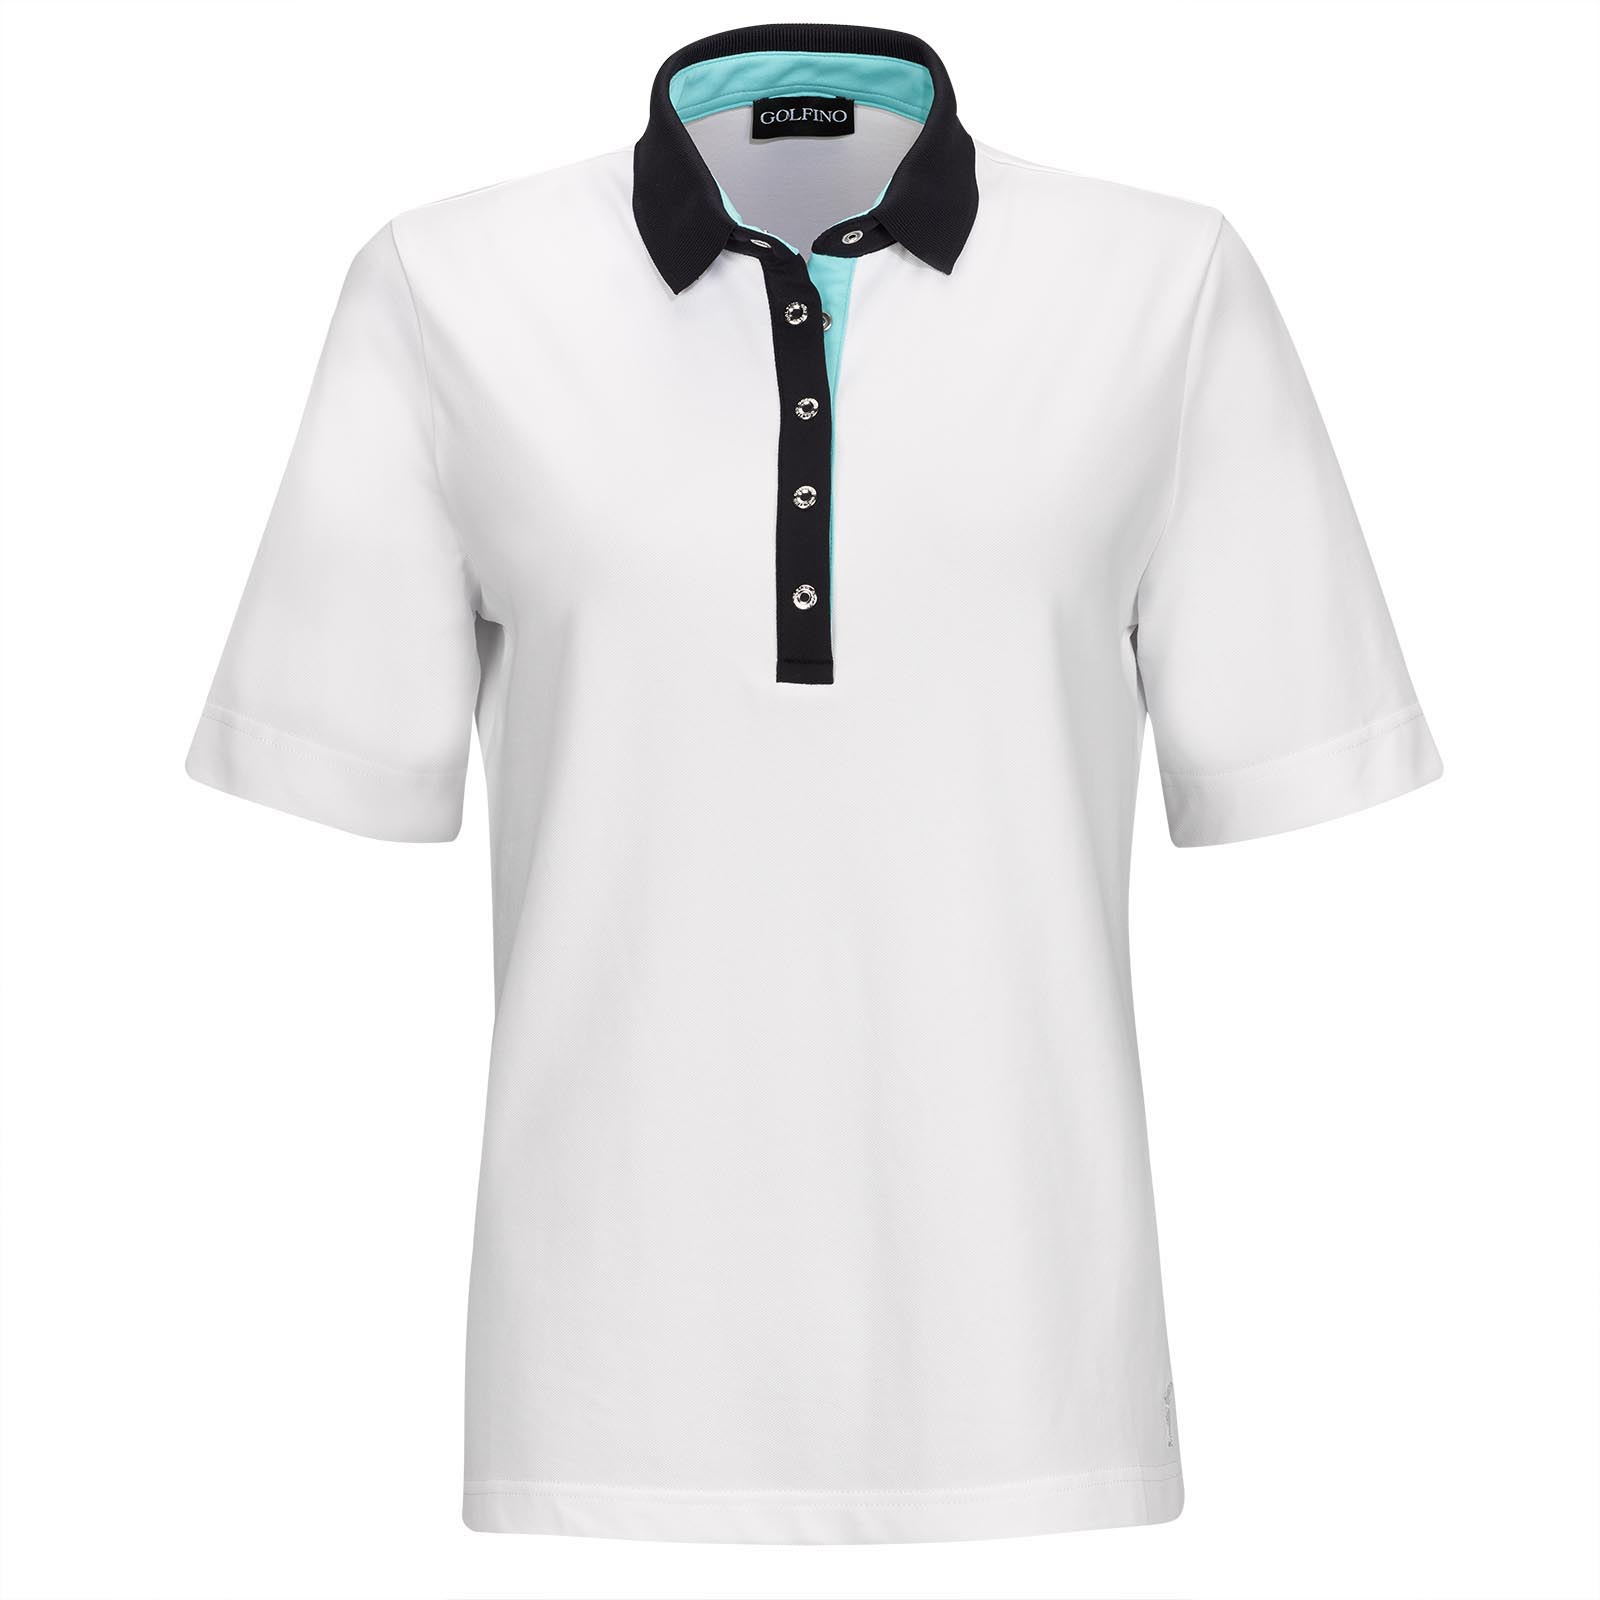 Short-sleeve Ladies' golf polo with Sun Protection and stretch function